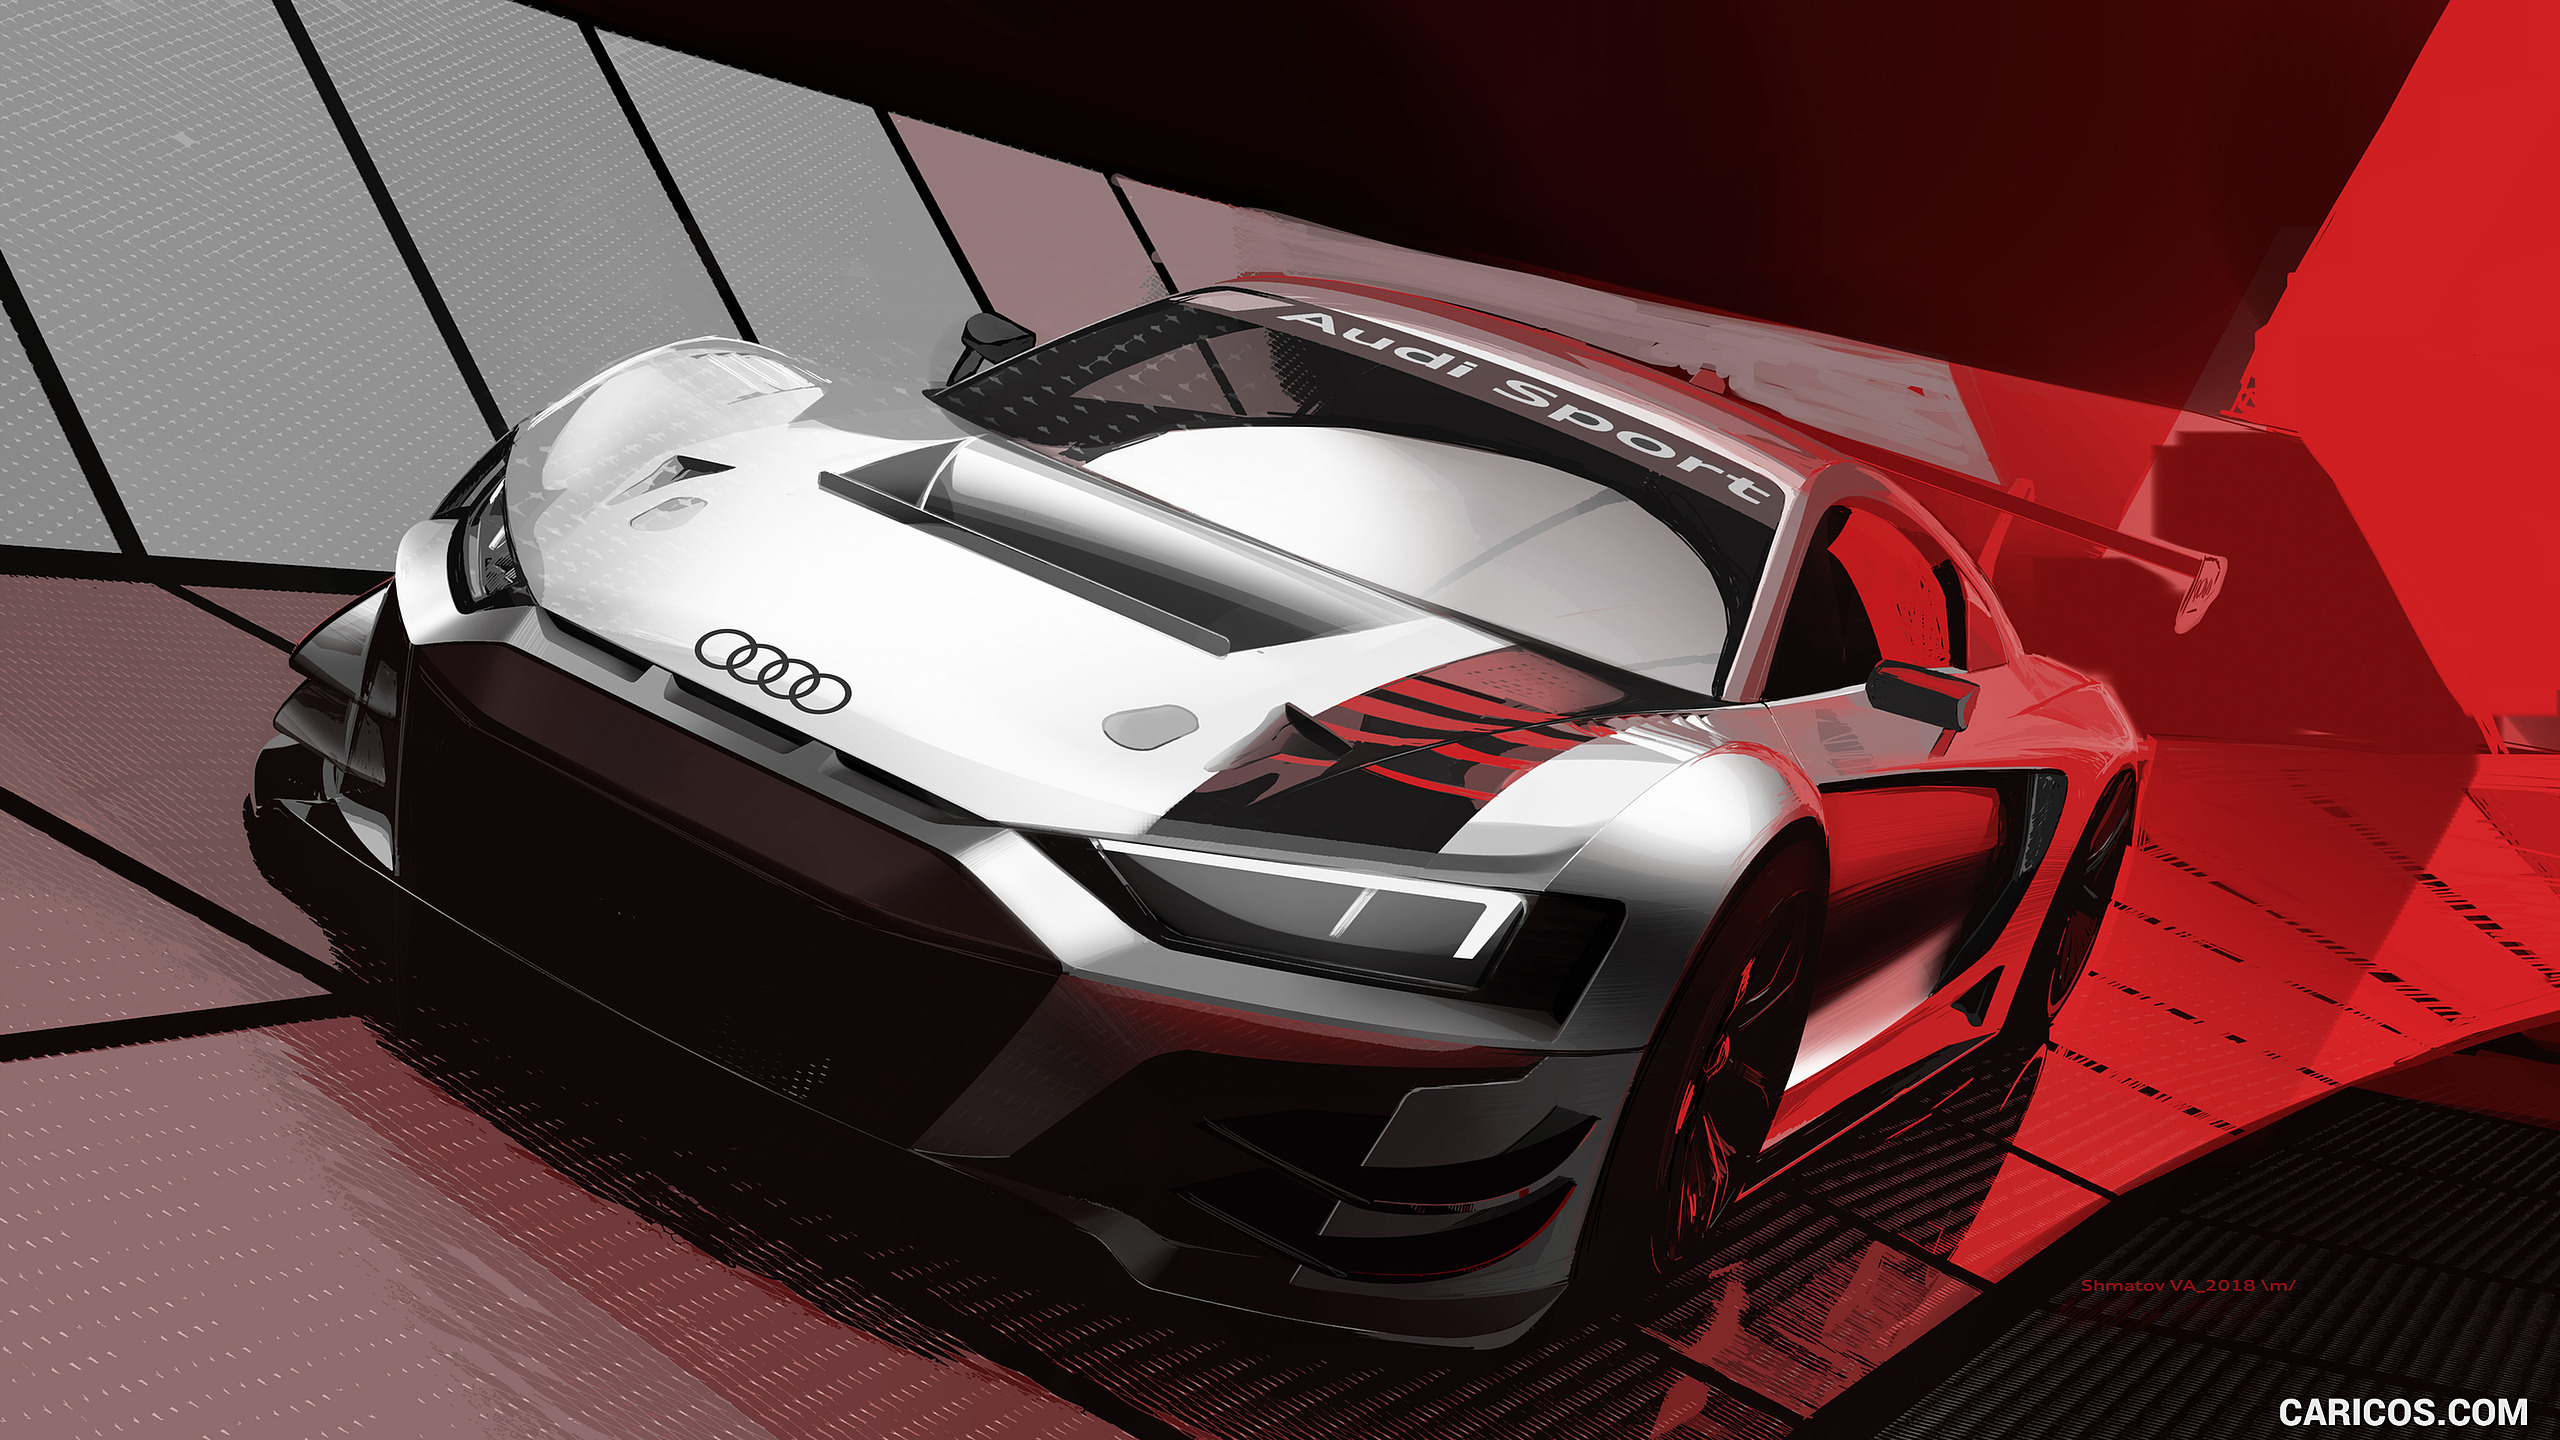 2019 Audi R8 LMS GT3   Design Sketch HD Wallpaper 18 2560x1440